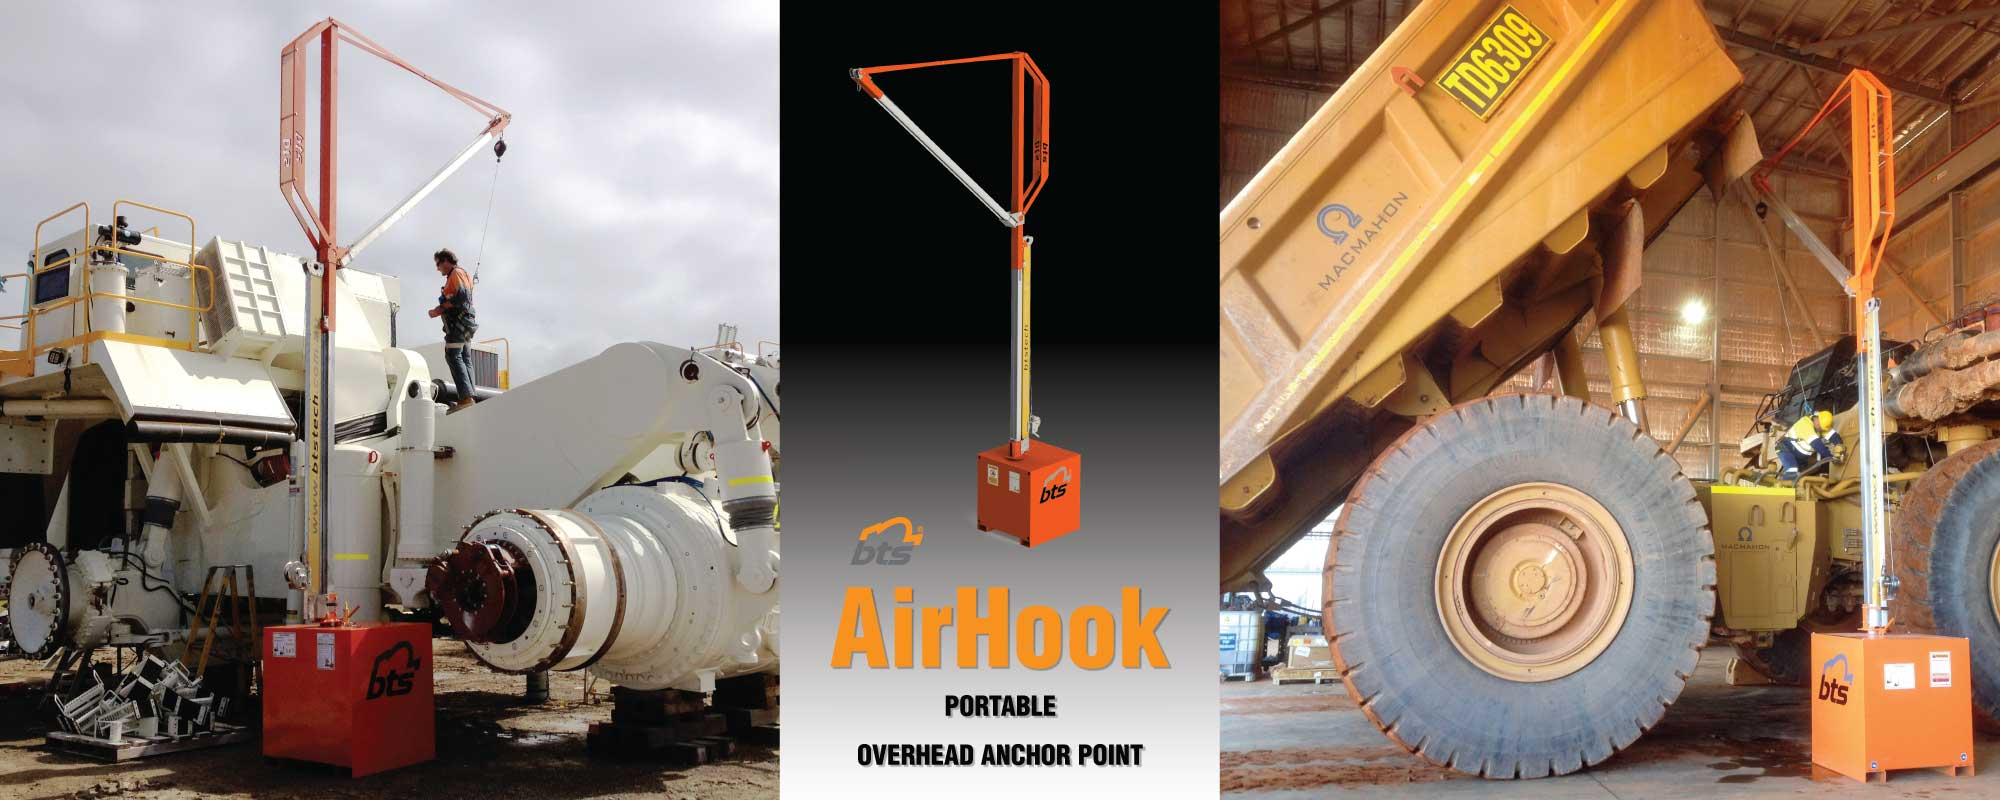 AirHook